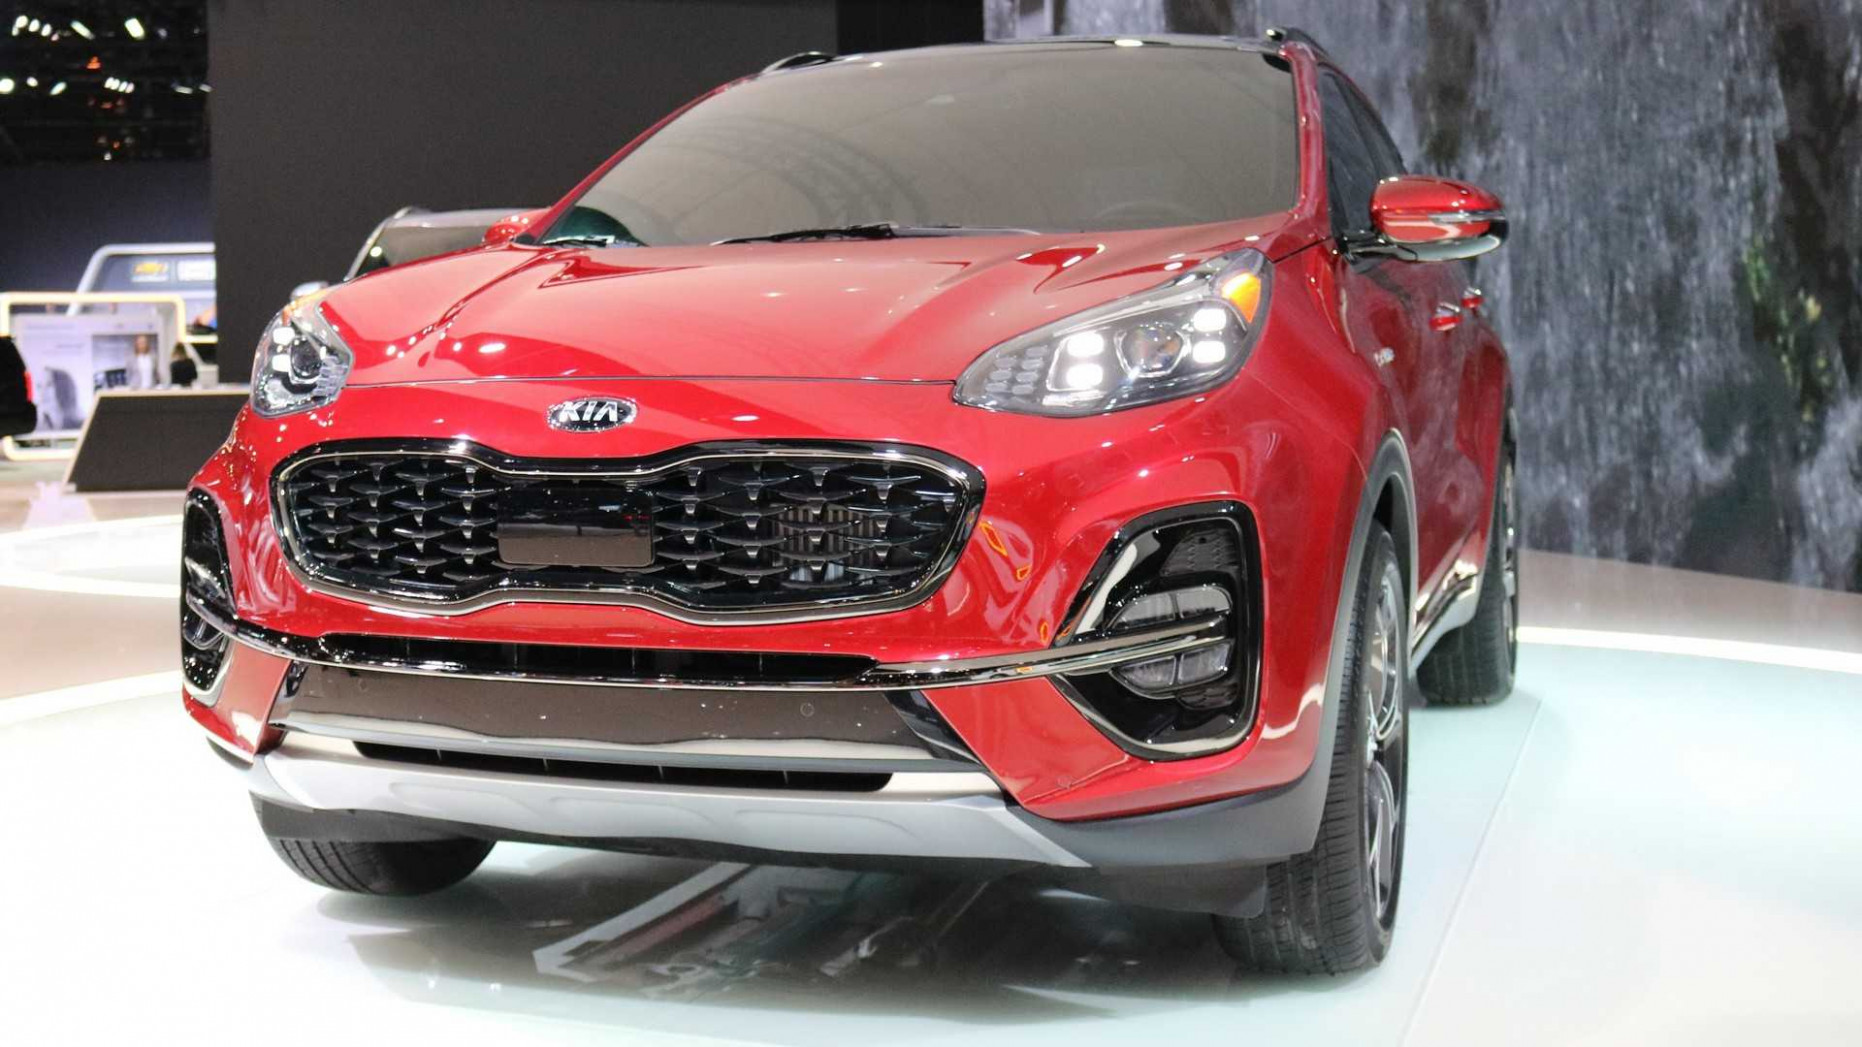 9 Kia Sportage Debuts In Chicago With Fresh Face, More Tech - 2020 kia suv